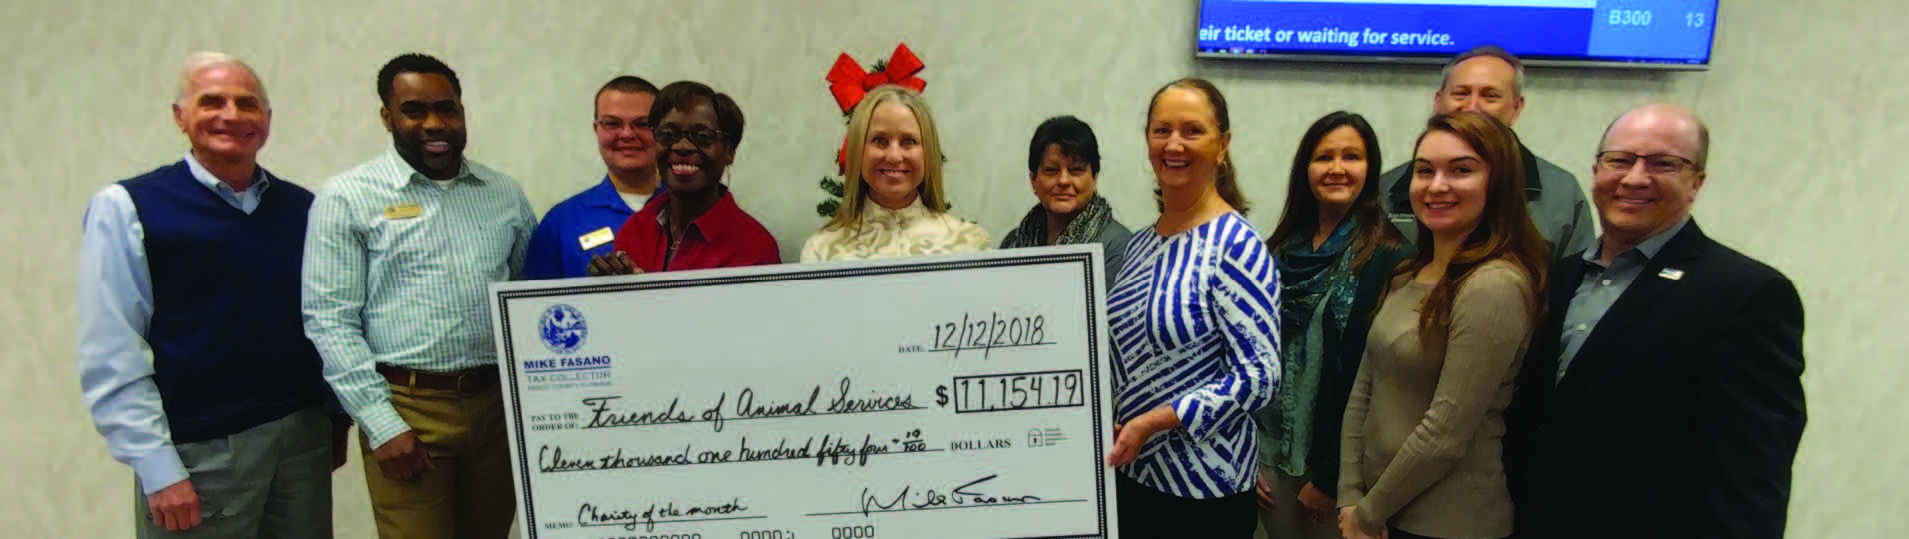 Pasco County Tax Collector's Offices Collect $11,154 19 for